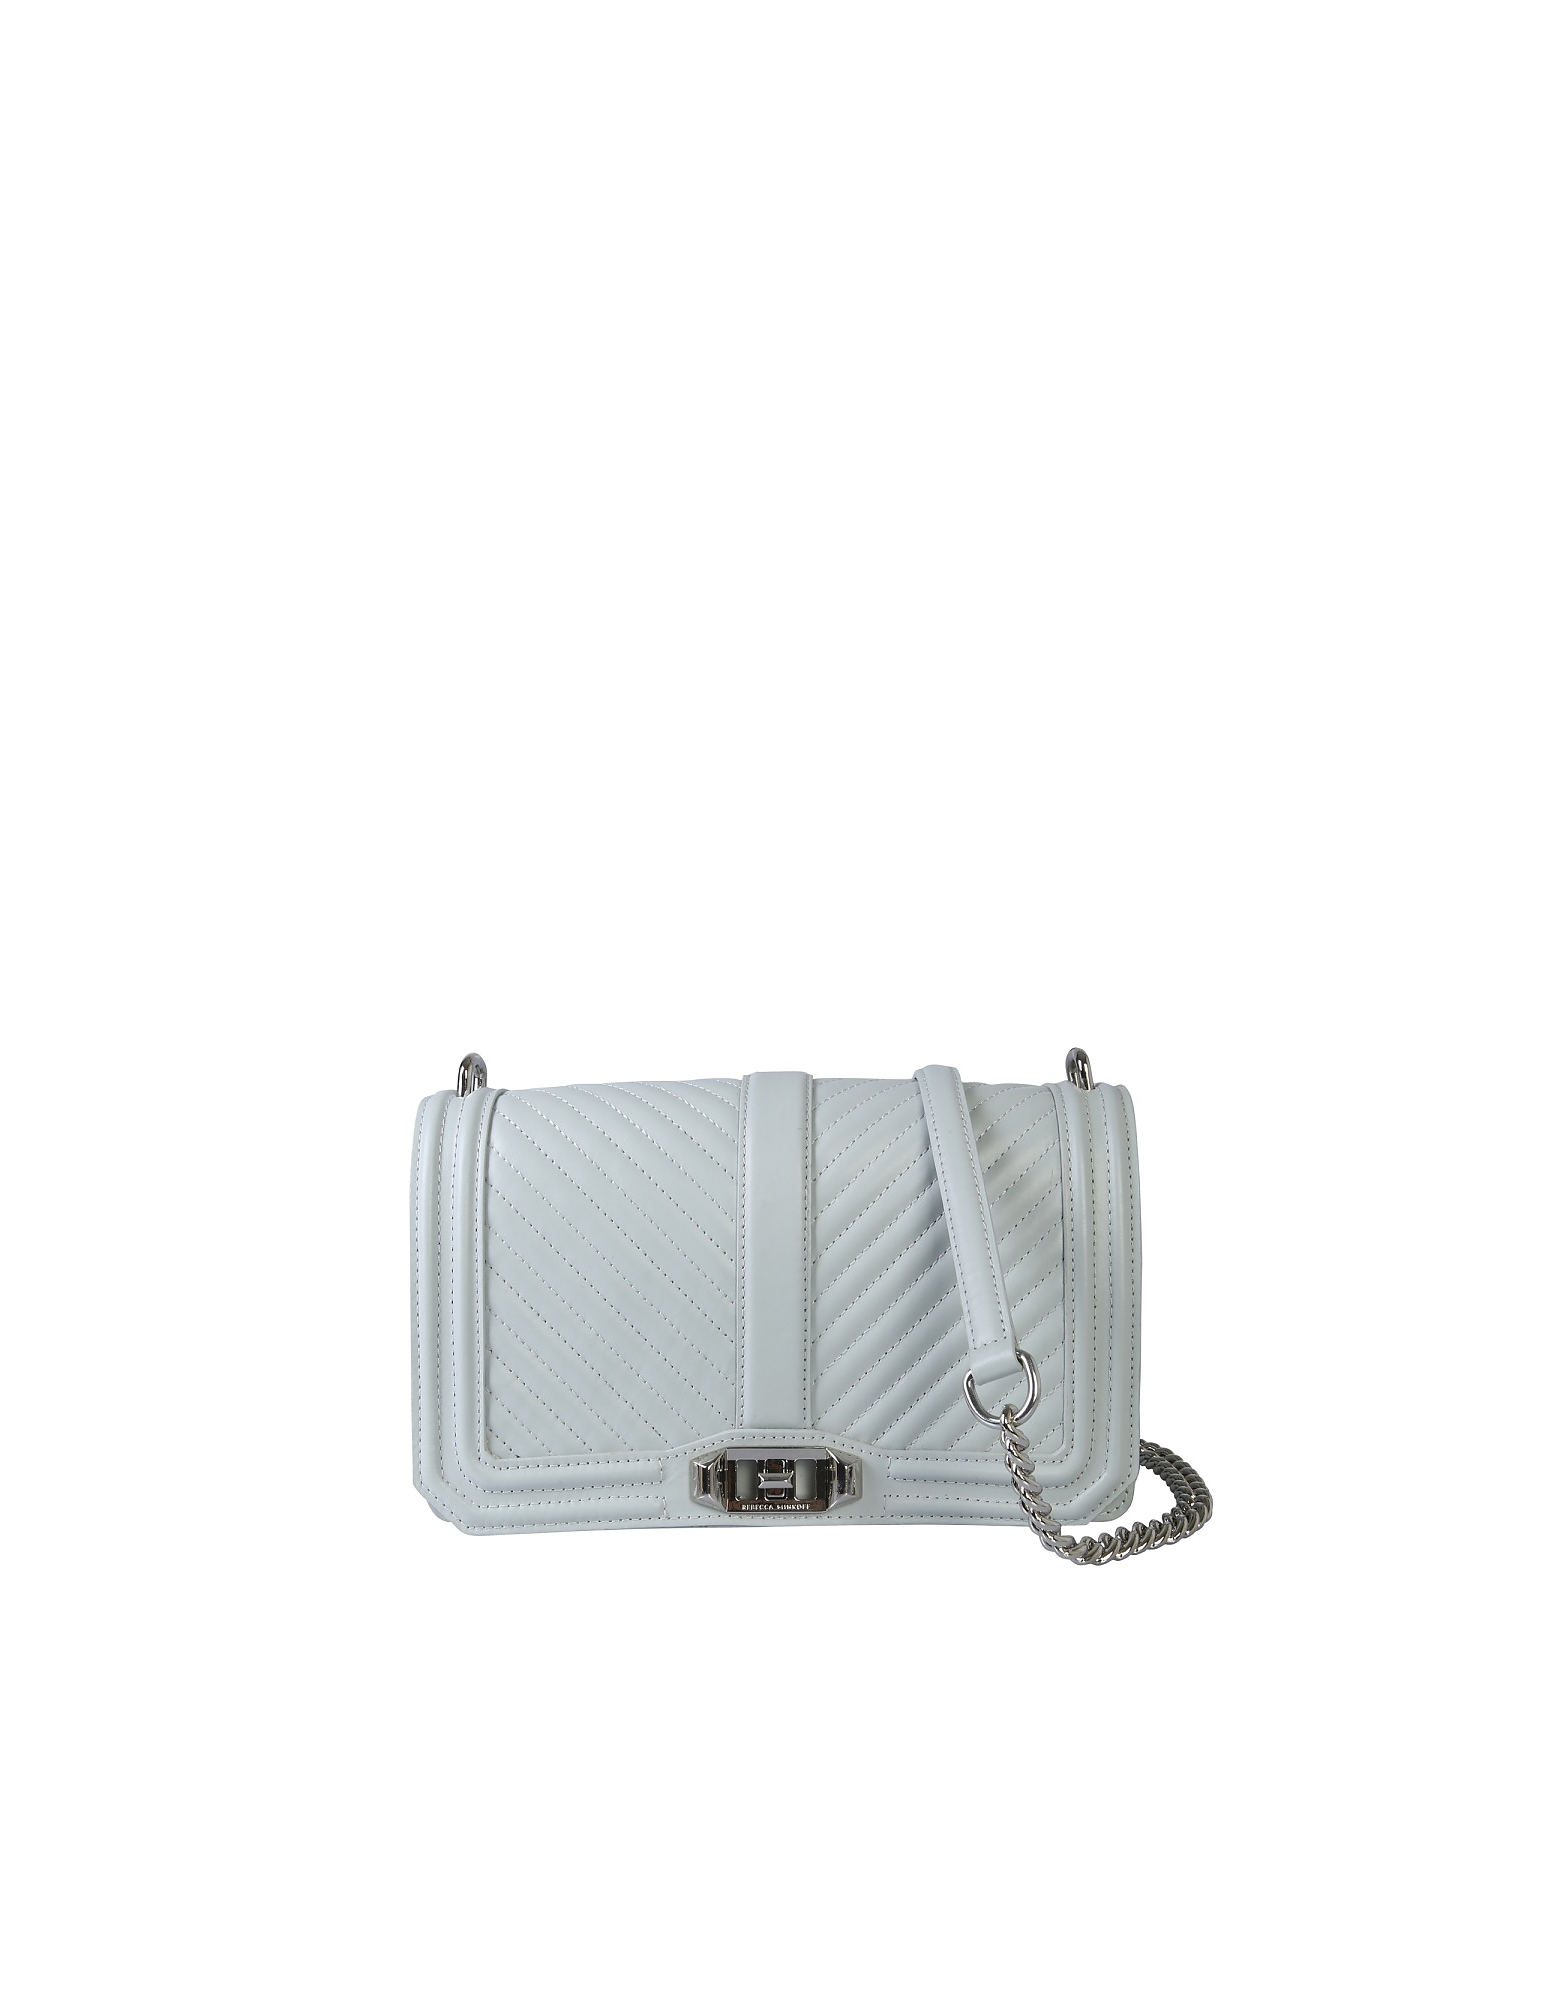 Rebecca Minkoff Designer Handbags, Love Bag